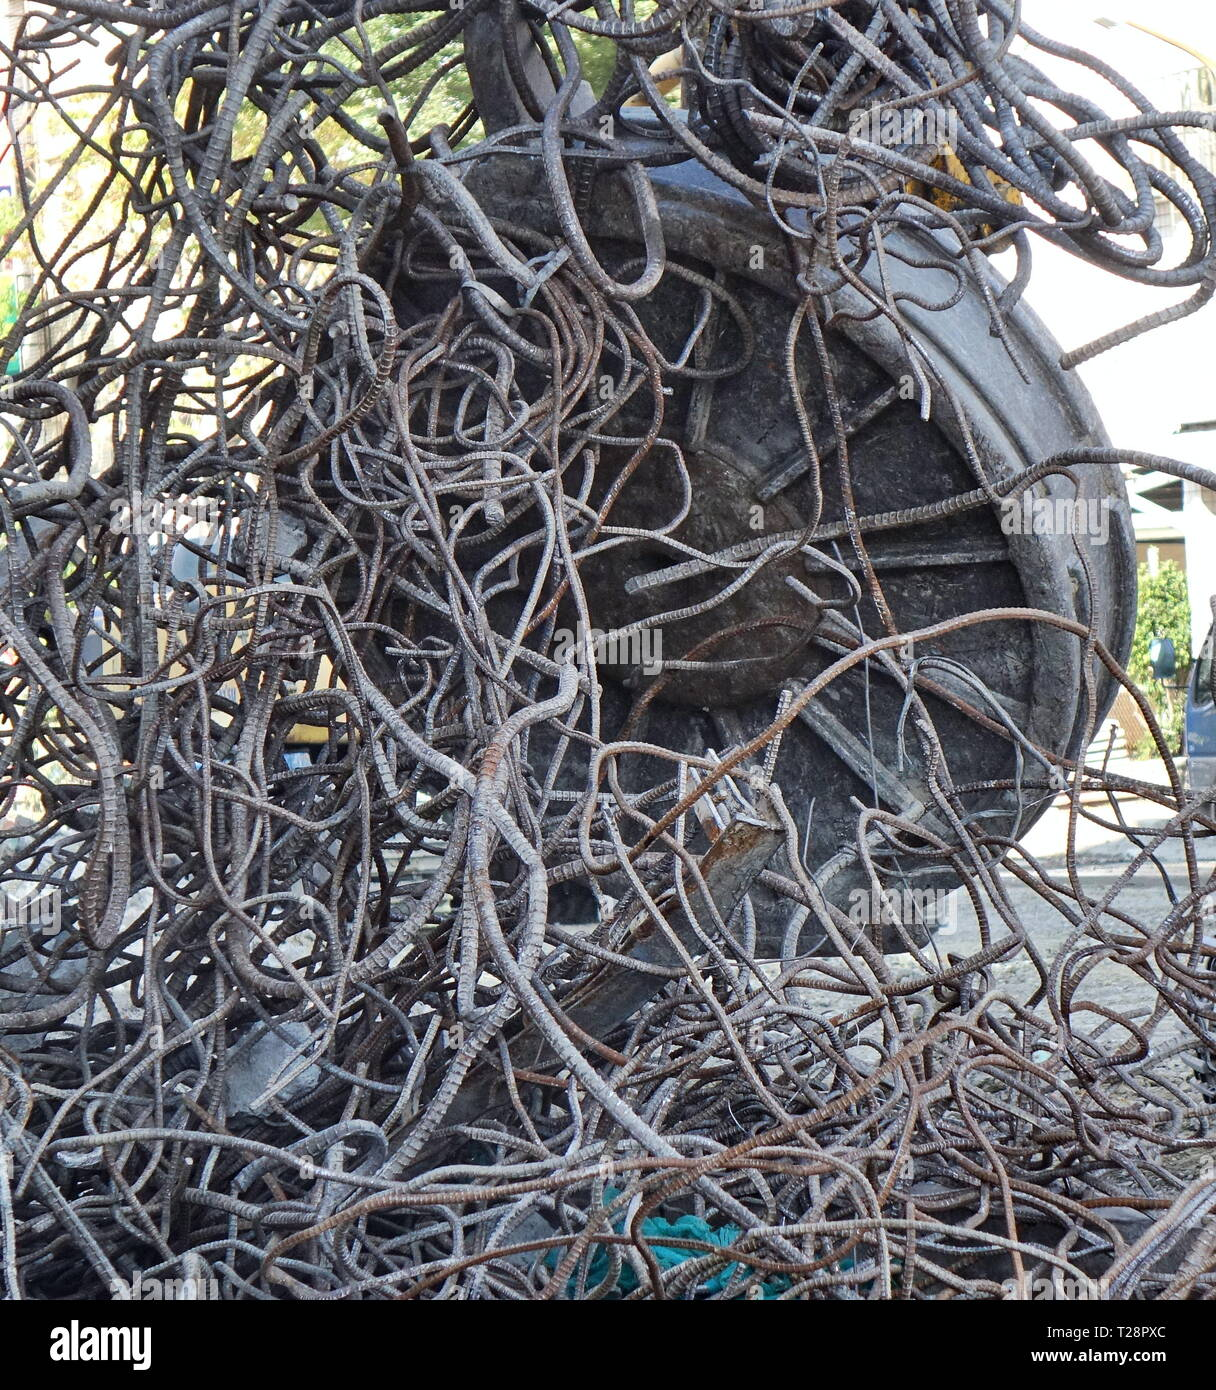 A powerful industrial magnet picks up scrap metal from a demolition project - Stock Image